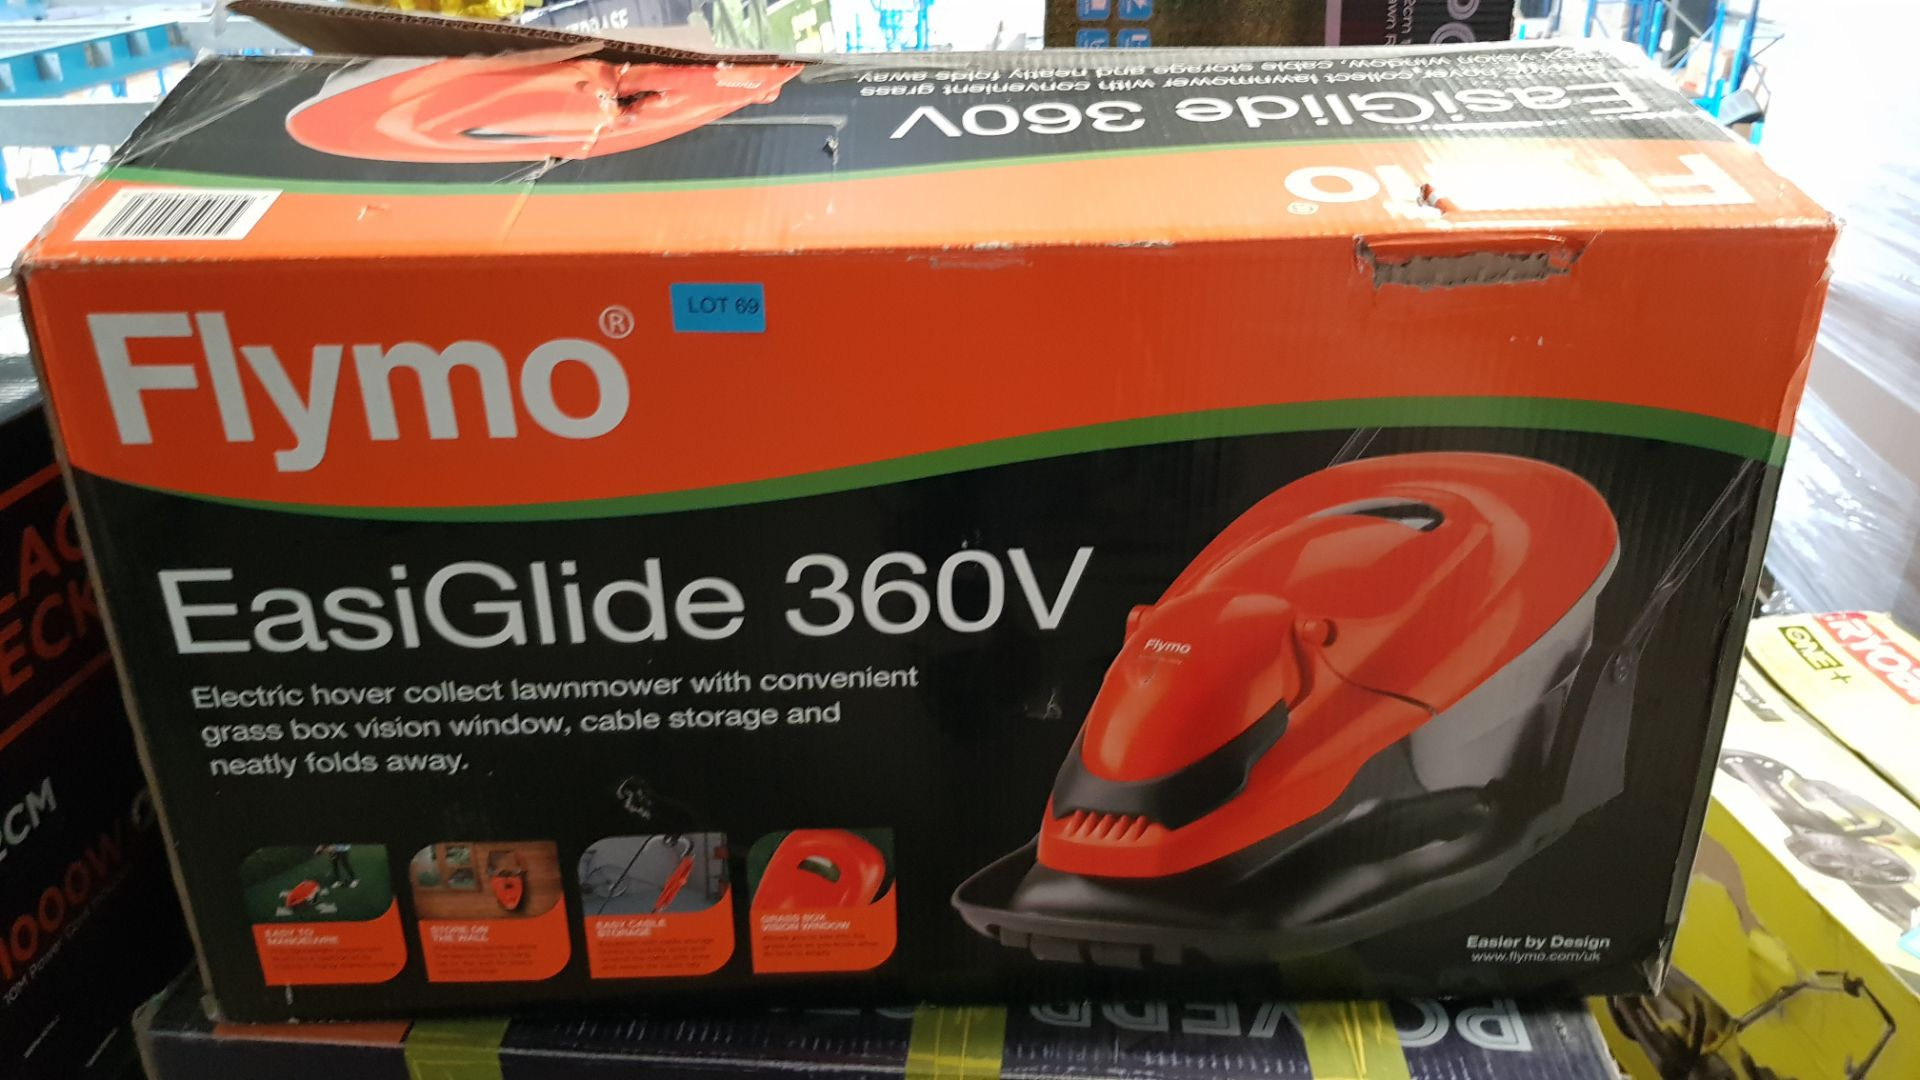 (P5) 1x Flymo EasiGlide 360V Electric Hover Lawnmower RRP £139.00. - Image 3 of 3